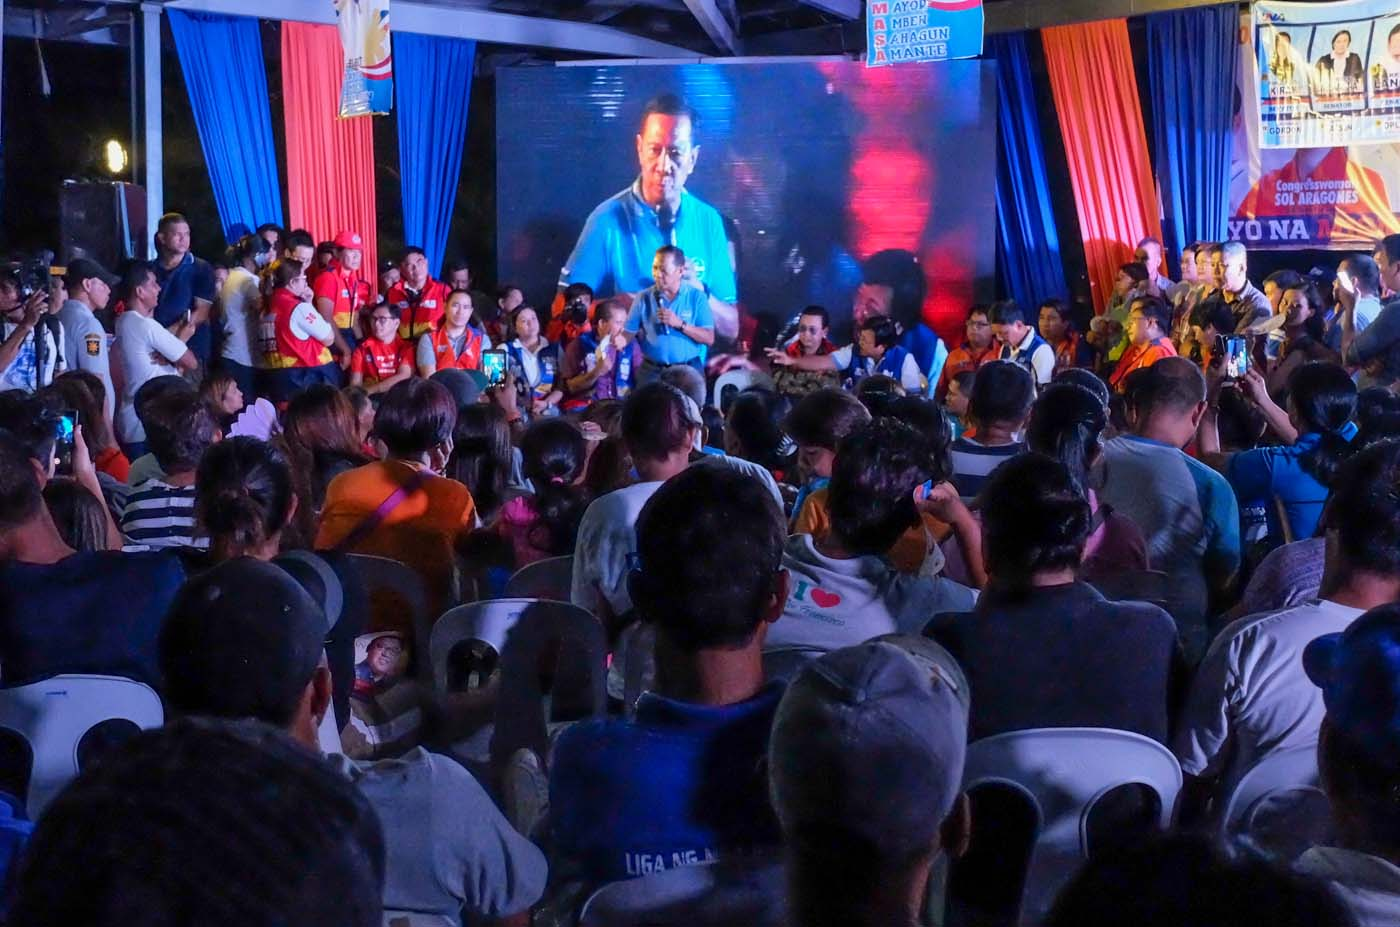 ON THE HOMESTRETCH. Will Binay's machinery propel him to the presidency? Photo by Alecs Ongcal/Rappler